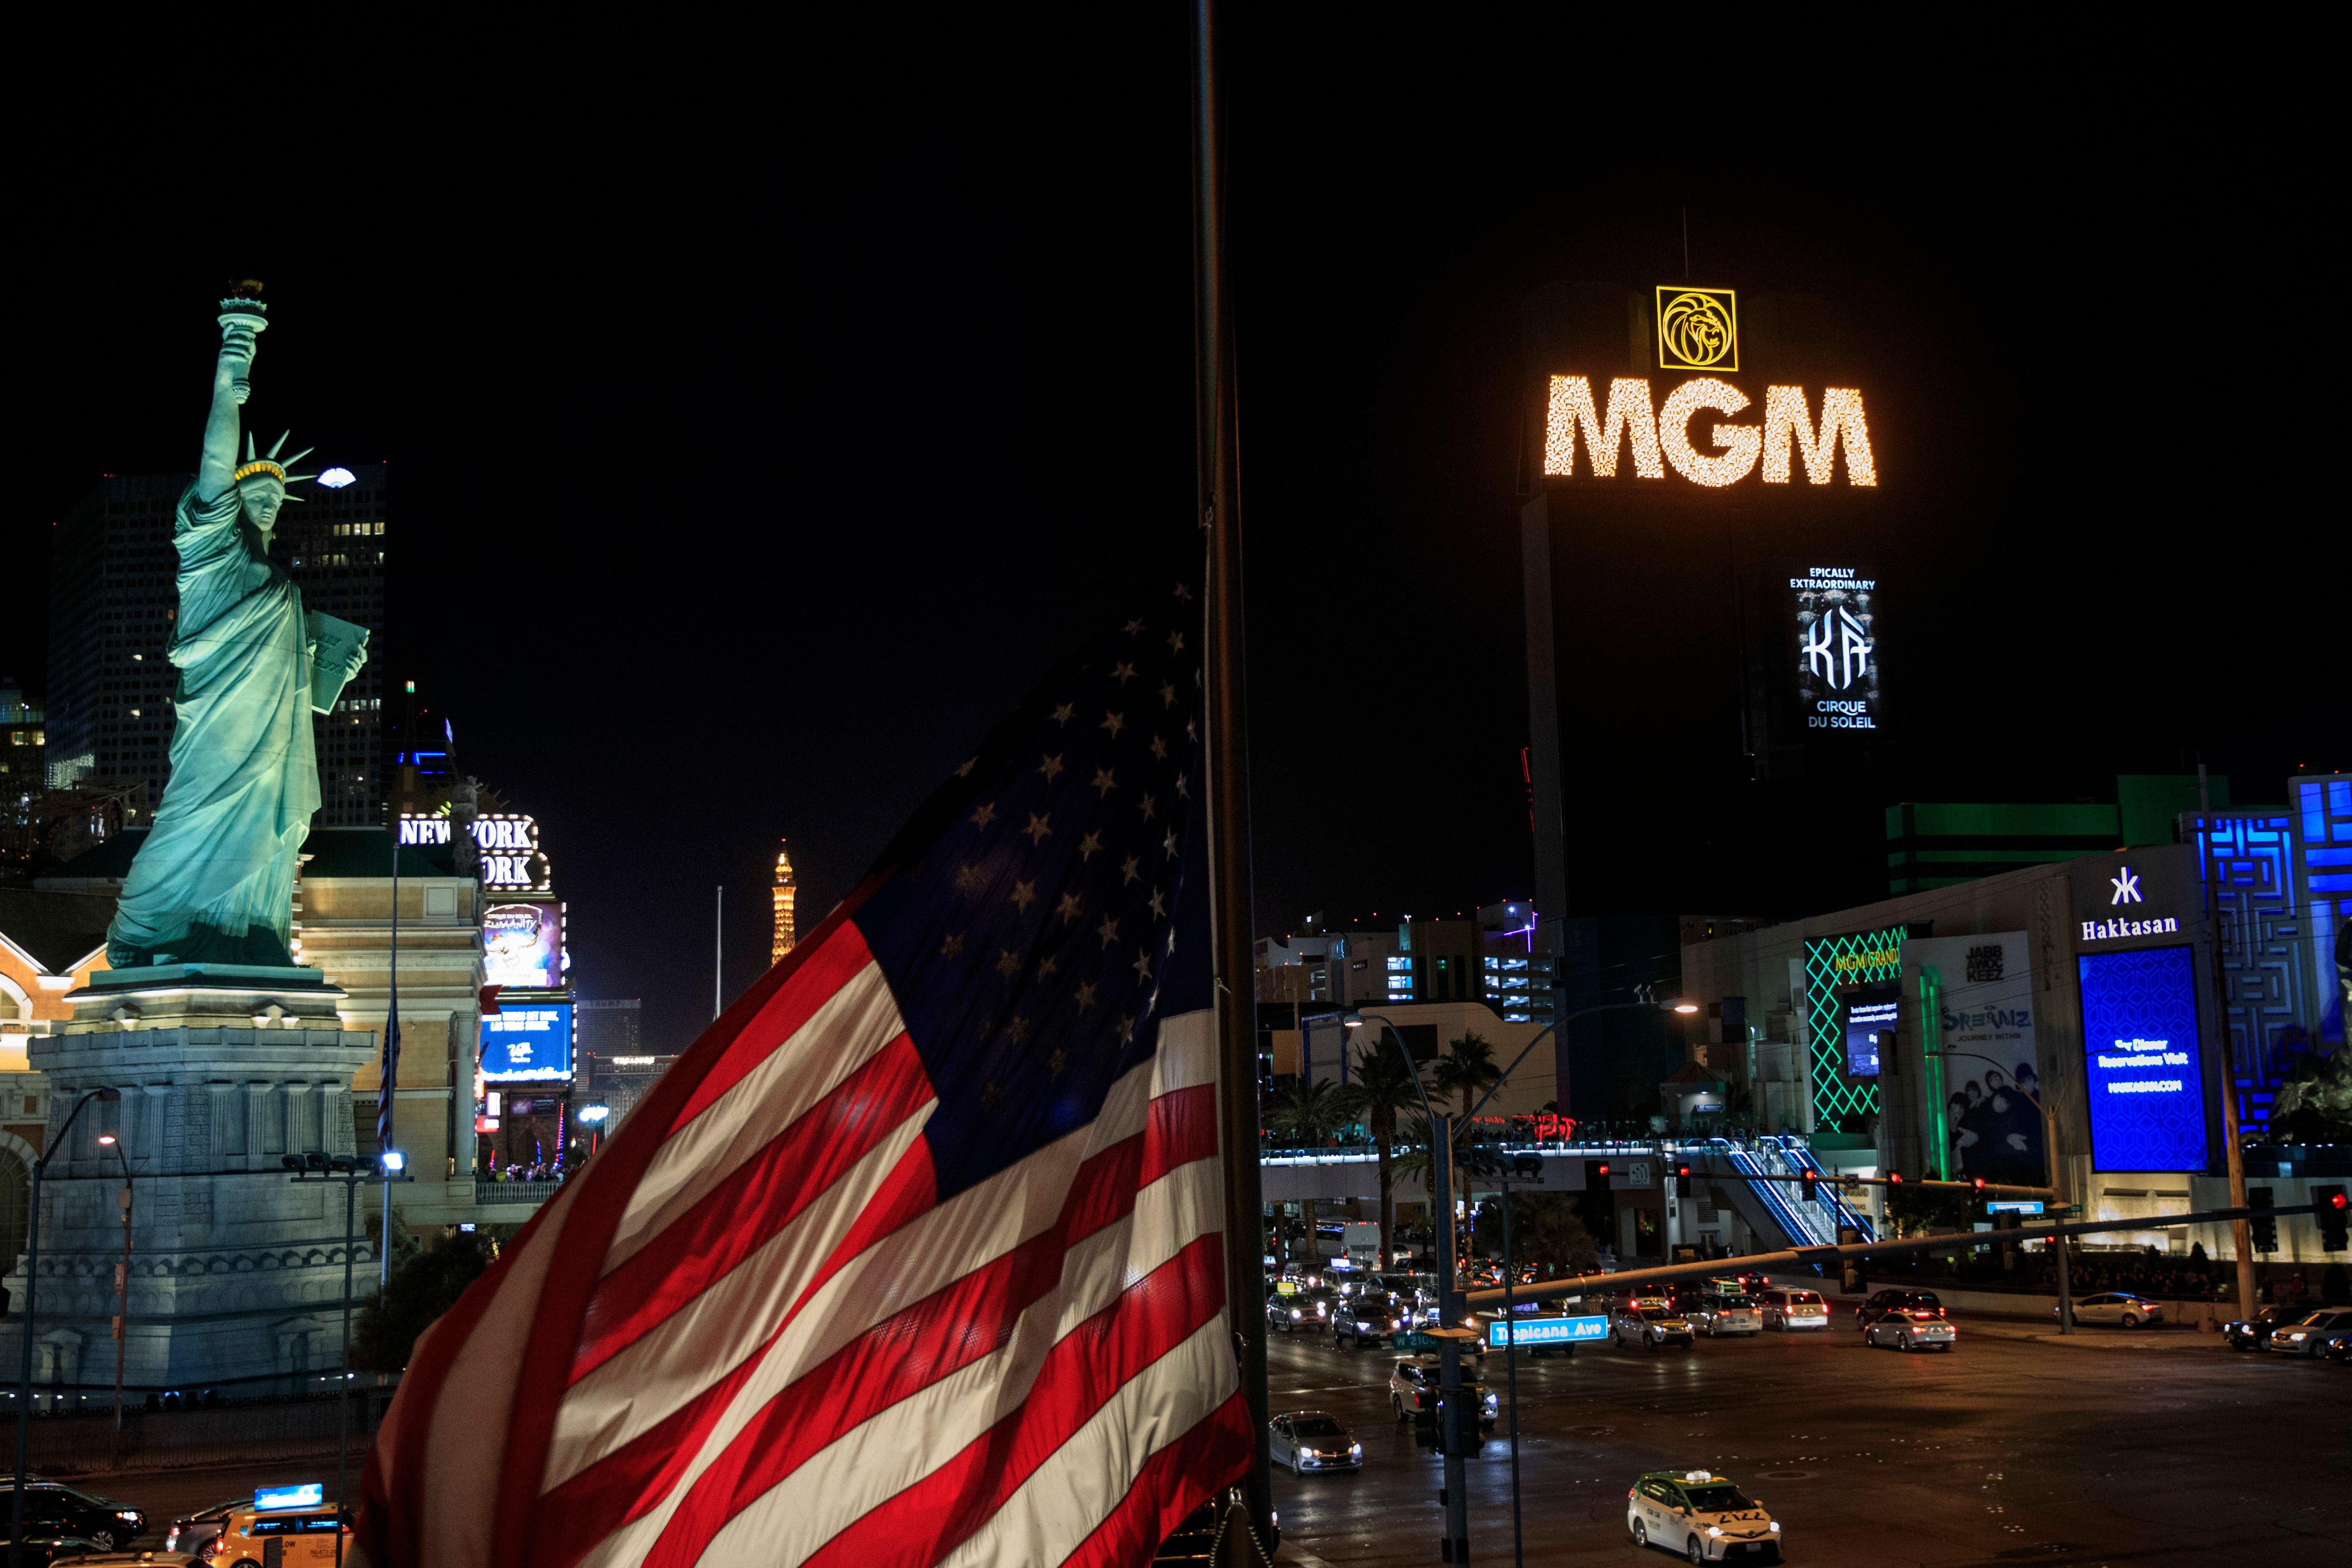 LAS VEGAS, NV - OCTOBER 8: The marquees on the Las Vegas Strip, including the marquee of MGM Grand Hotel & Casino (R), go dark for 11 minutes in tribute to the victims of the Route 91 Harvest country music festival, on October 8, 2017 in Las Vegas, Nevada. On October 1, Stephen Paddock killed 58 people and injured more than 450 after he opened fire on a large crowd at the Route 91 Harvest country music festival. The massacre is one of the deadliest mass shooting events in U.S. history. (Photo by Drew Angerer/Getty Images)